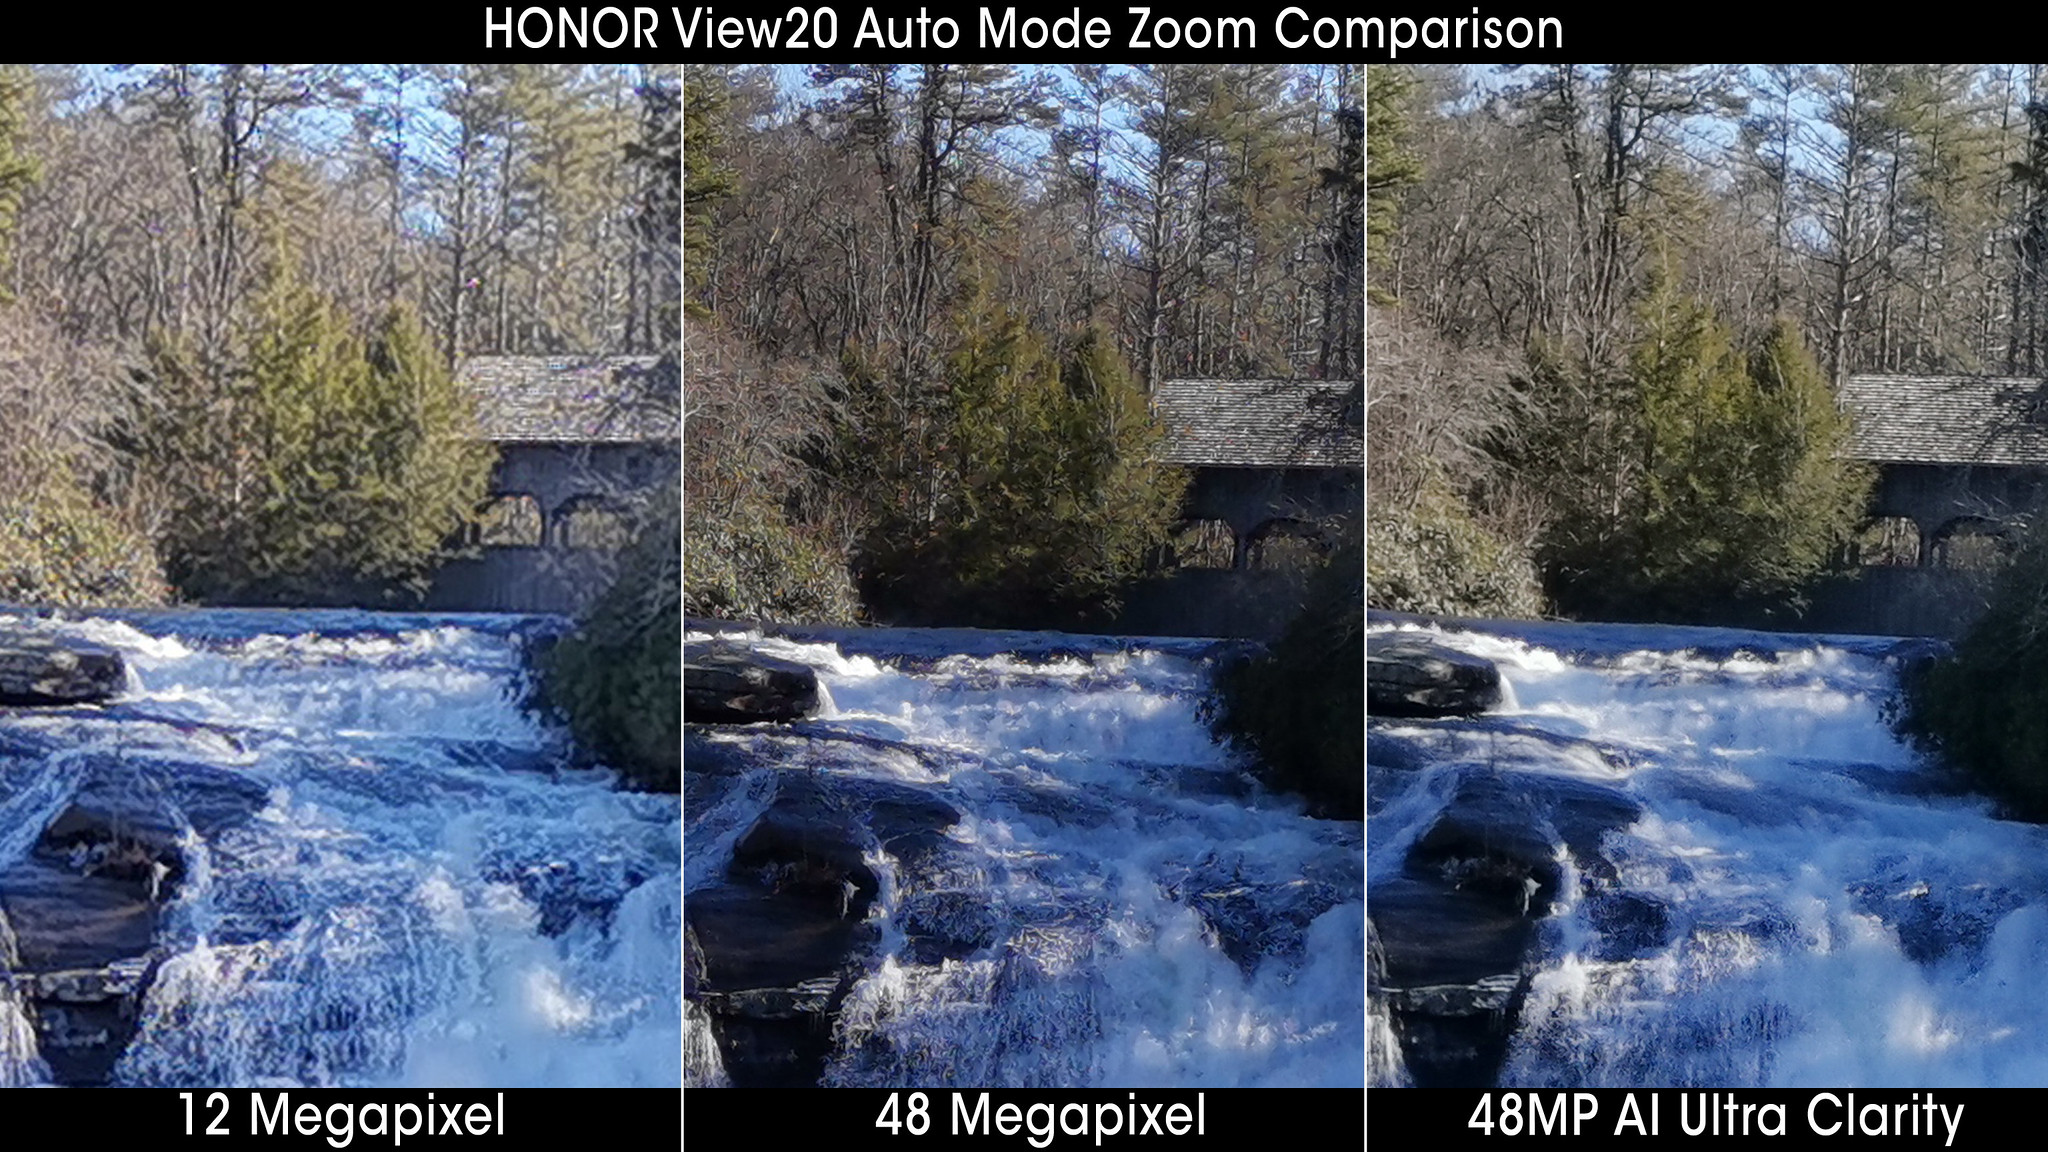 HONOR-View20-AH-NS-Megapixel-01z